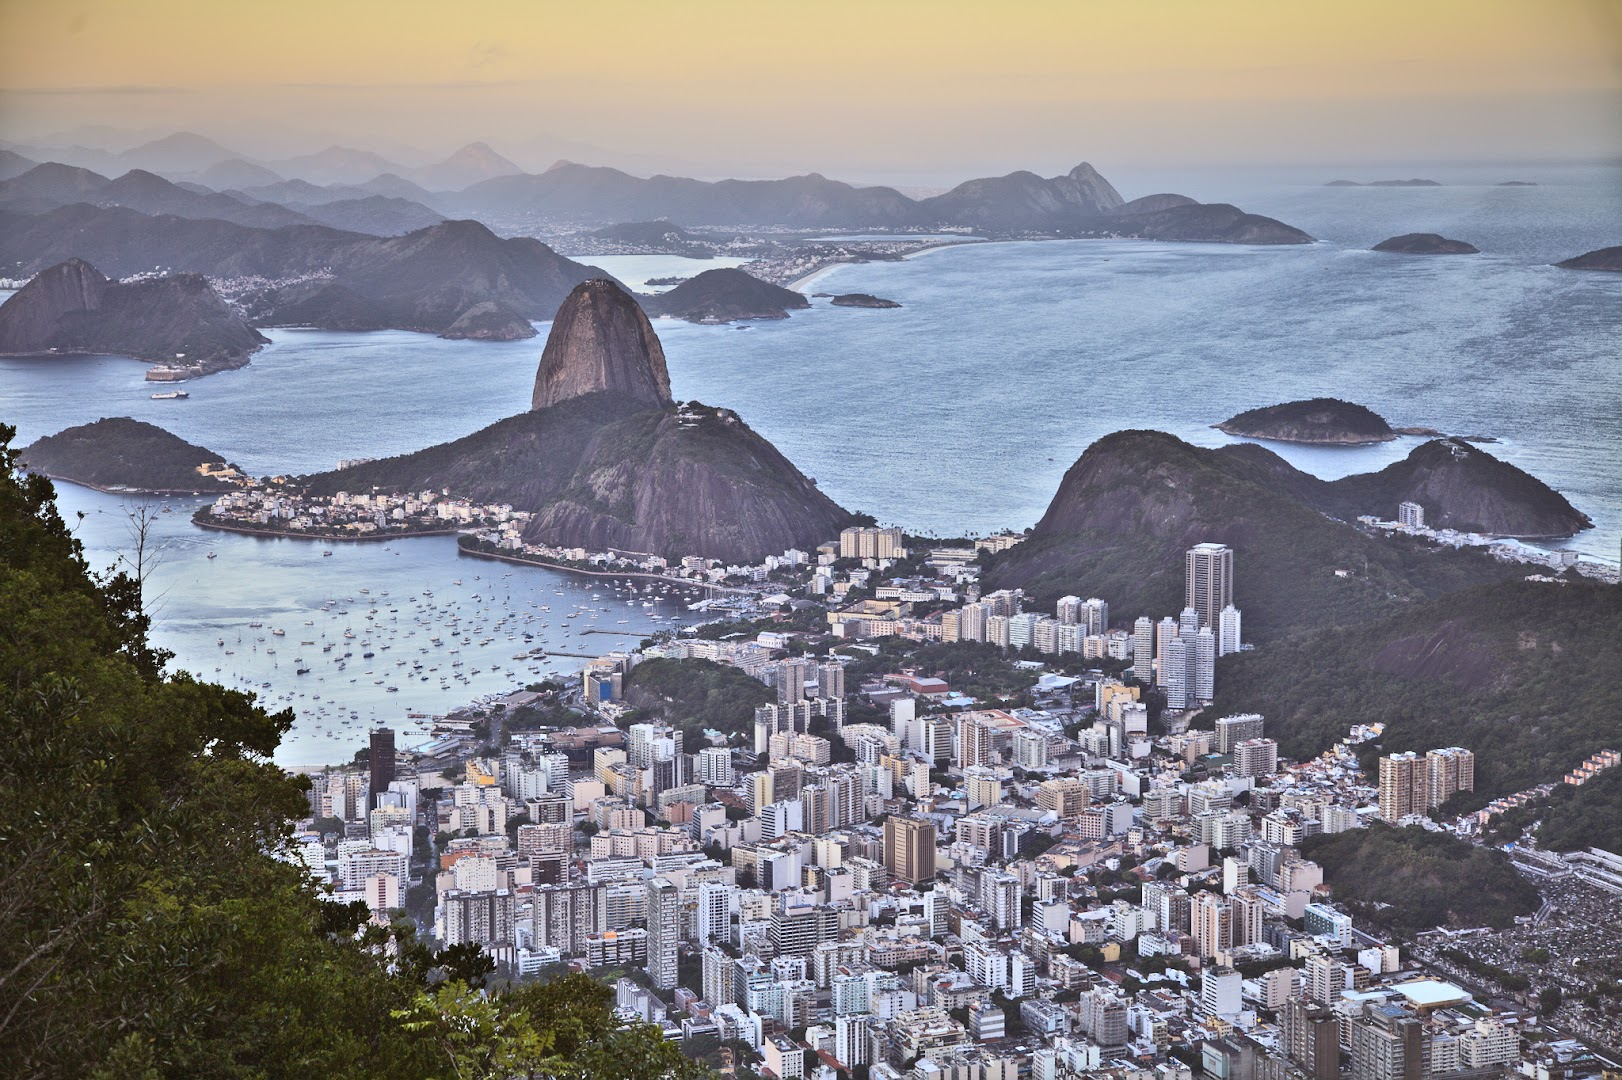 The view from Cristo faces every day - from Corcovado mountain